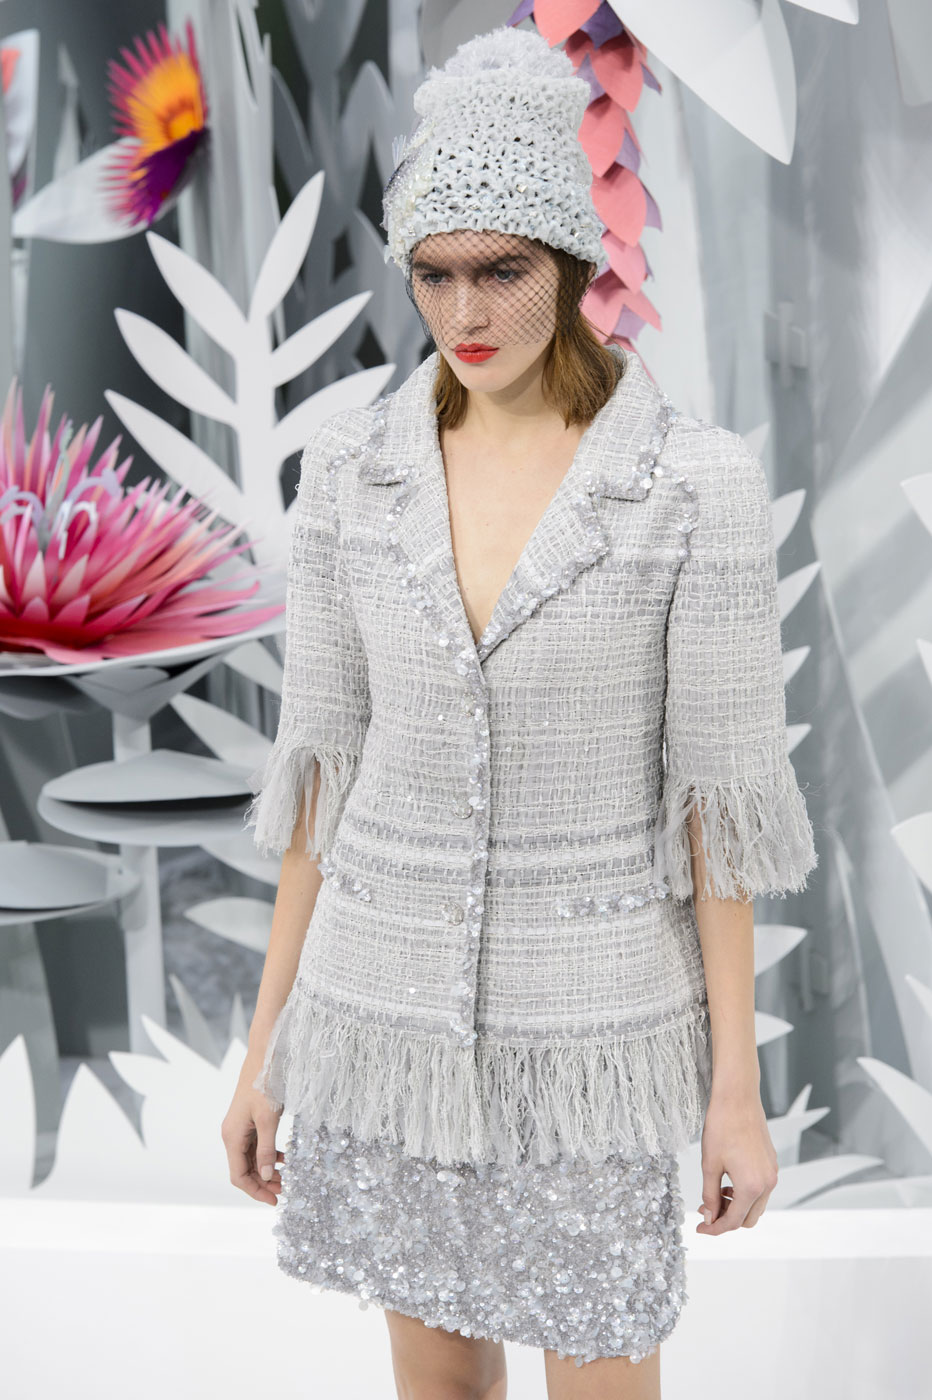 Chanel-fashion-runway-show-haute-couture-paris-spring-summer-2015-the-impression-061